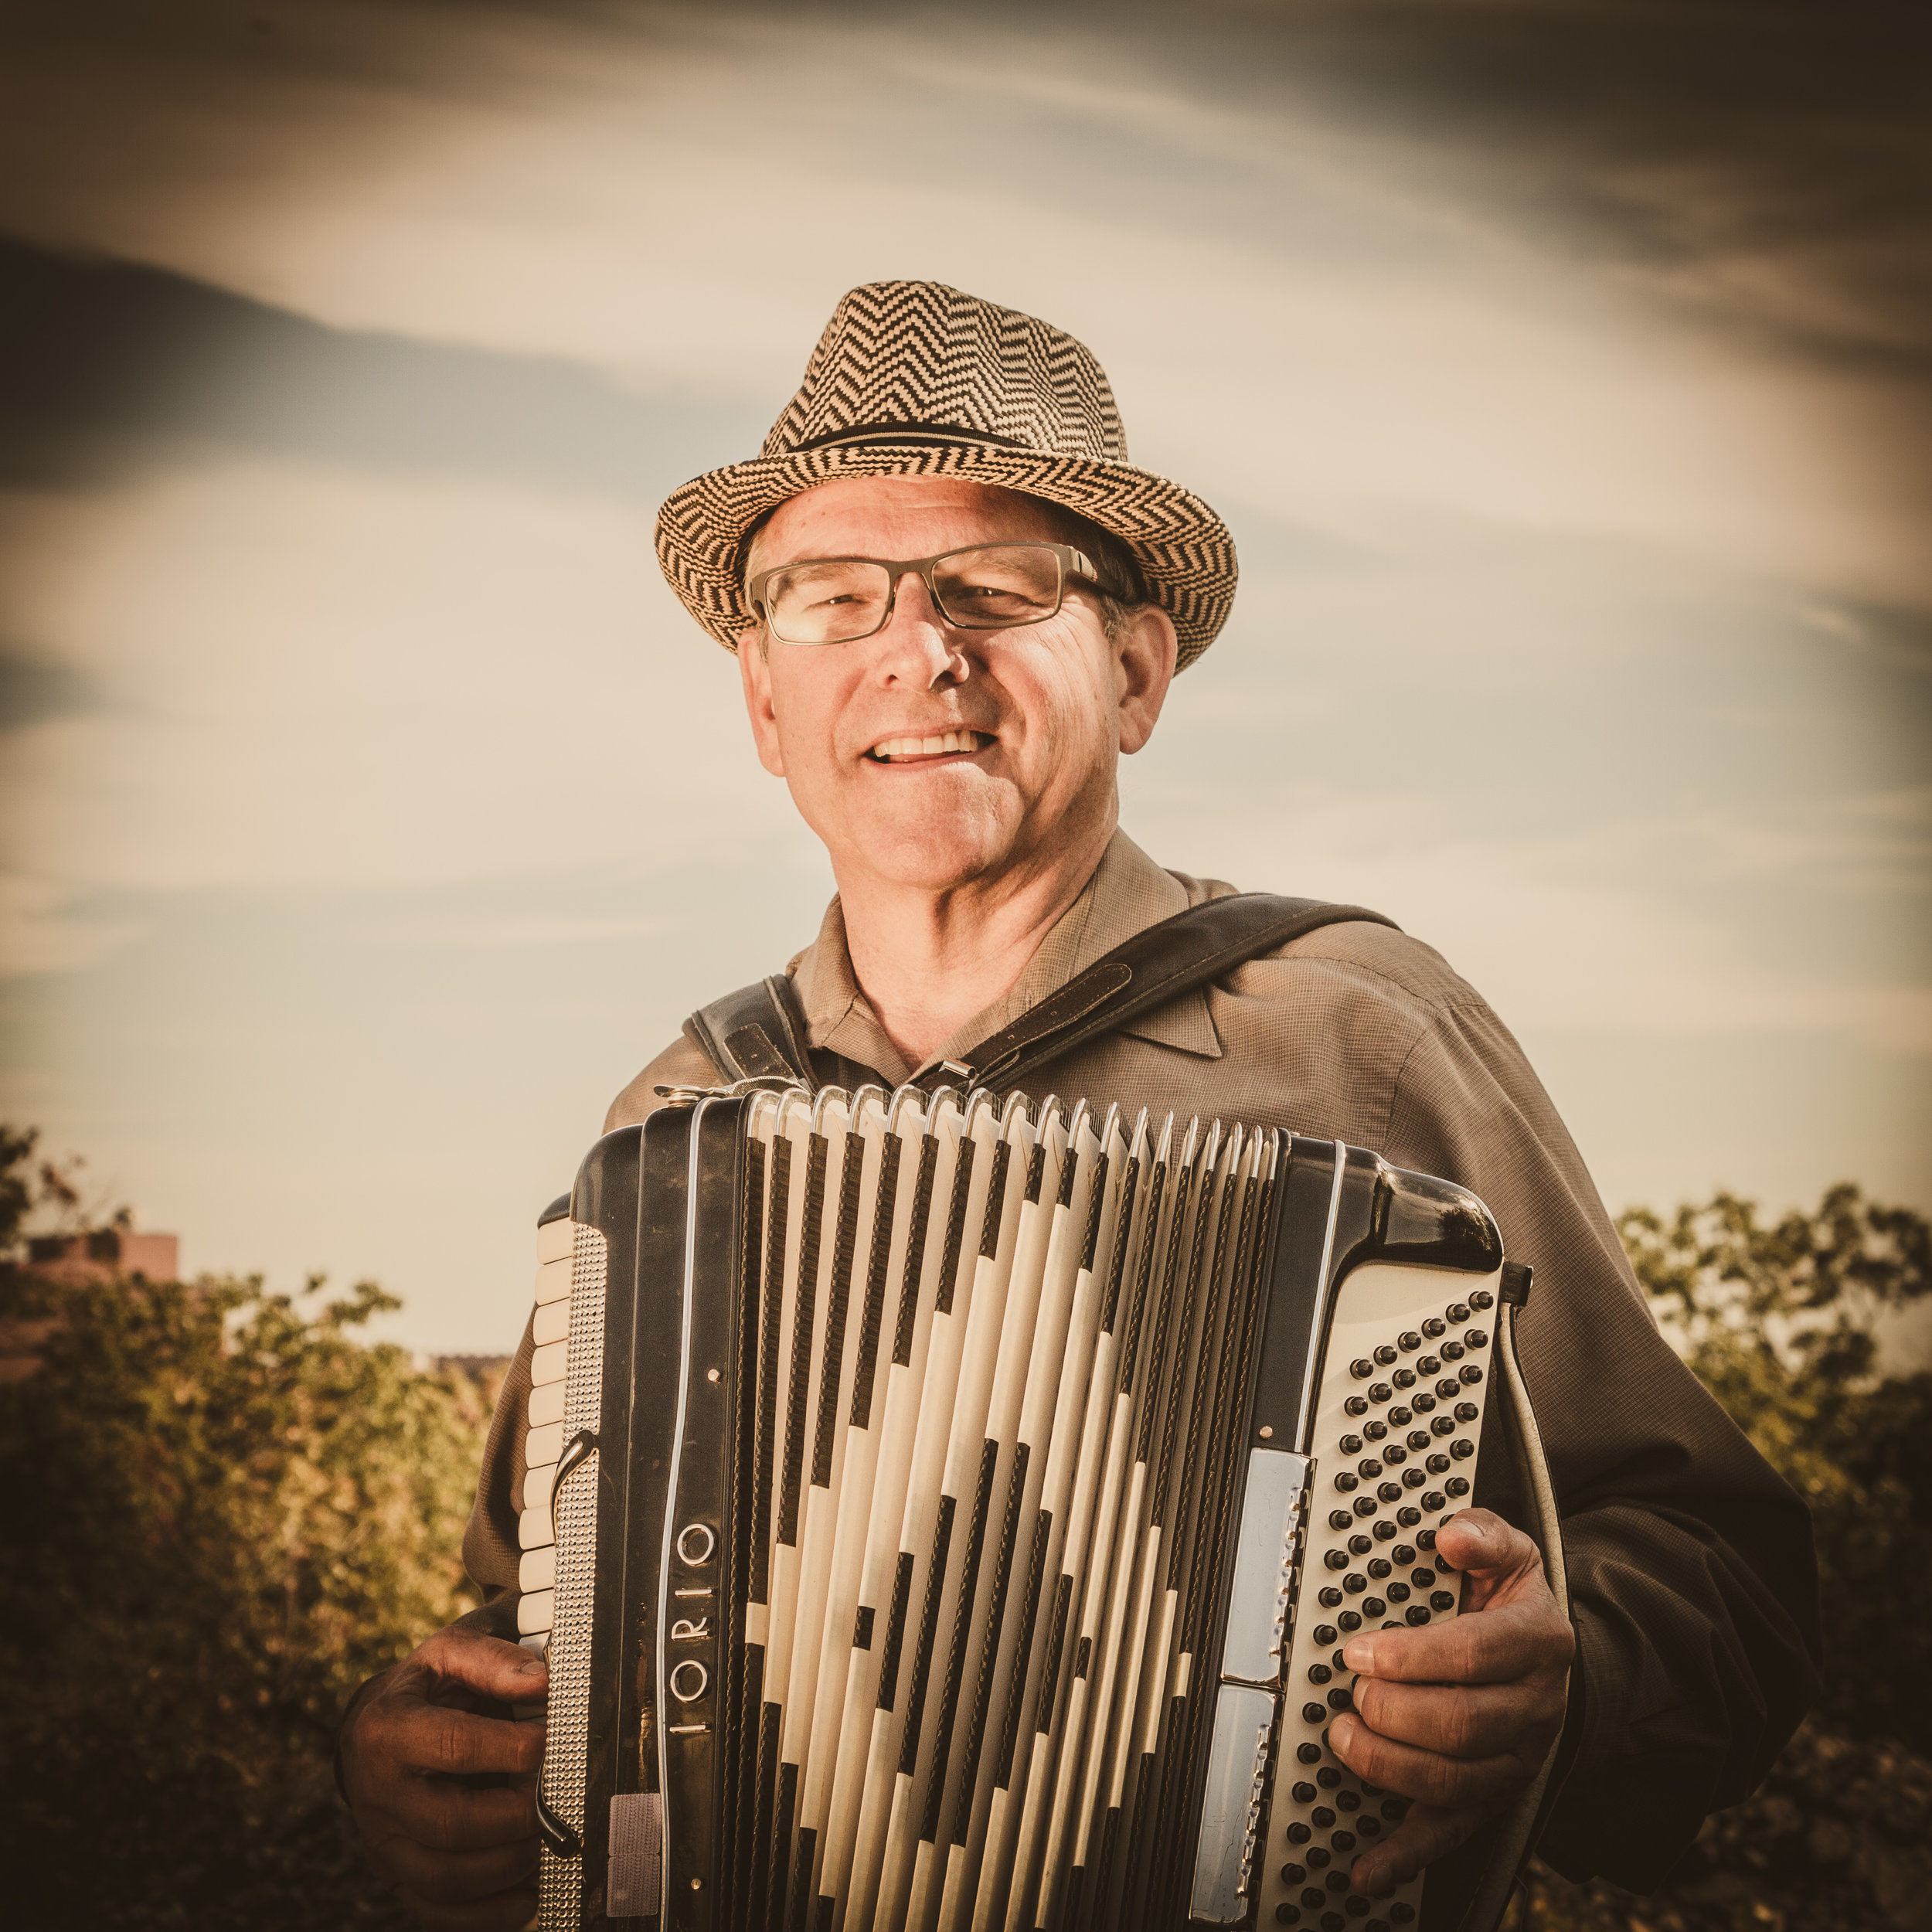 "Bill Walczakon Accordion & Vocals   - Former mayoral candidate Bill Walczak traces his love of music, and the accordion & guitar, back to when he was a ""wee child"". He emigrated from the wilds of New Jersey at the tender age of 18, establishing himself in Dorchester (and eventually Savin Hill), where he's been a neighborhood resident for the past 46 years. He's sung in his church's choir for 30 years, partnered musically with fellow Hillbilly Rob Atterbury for over 20, and in his salad days enjoyed playing 'hippy music', all of which has made him the (music) man he is now.Quote:"